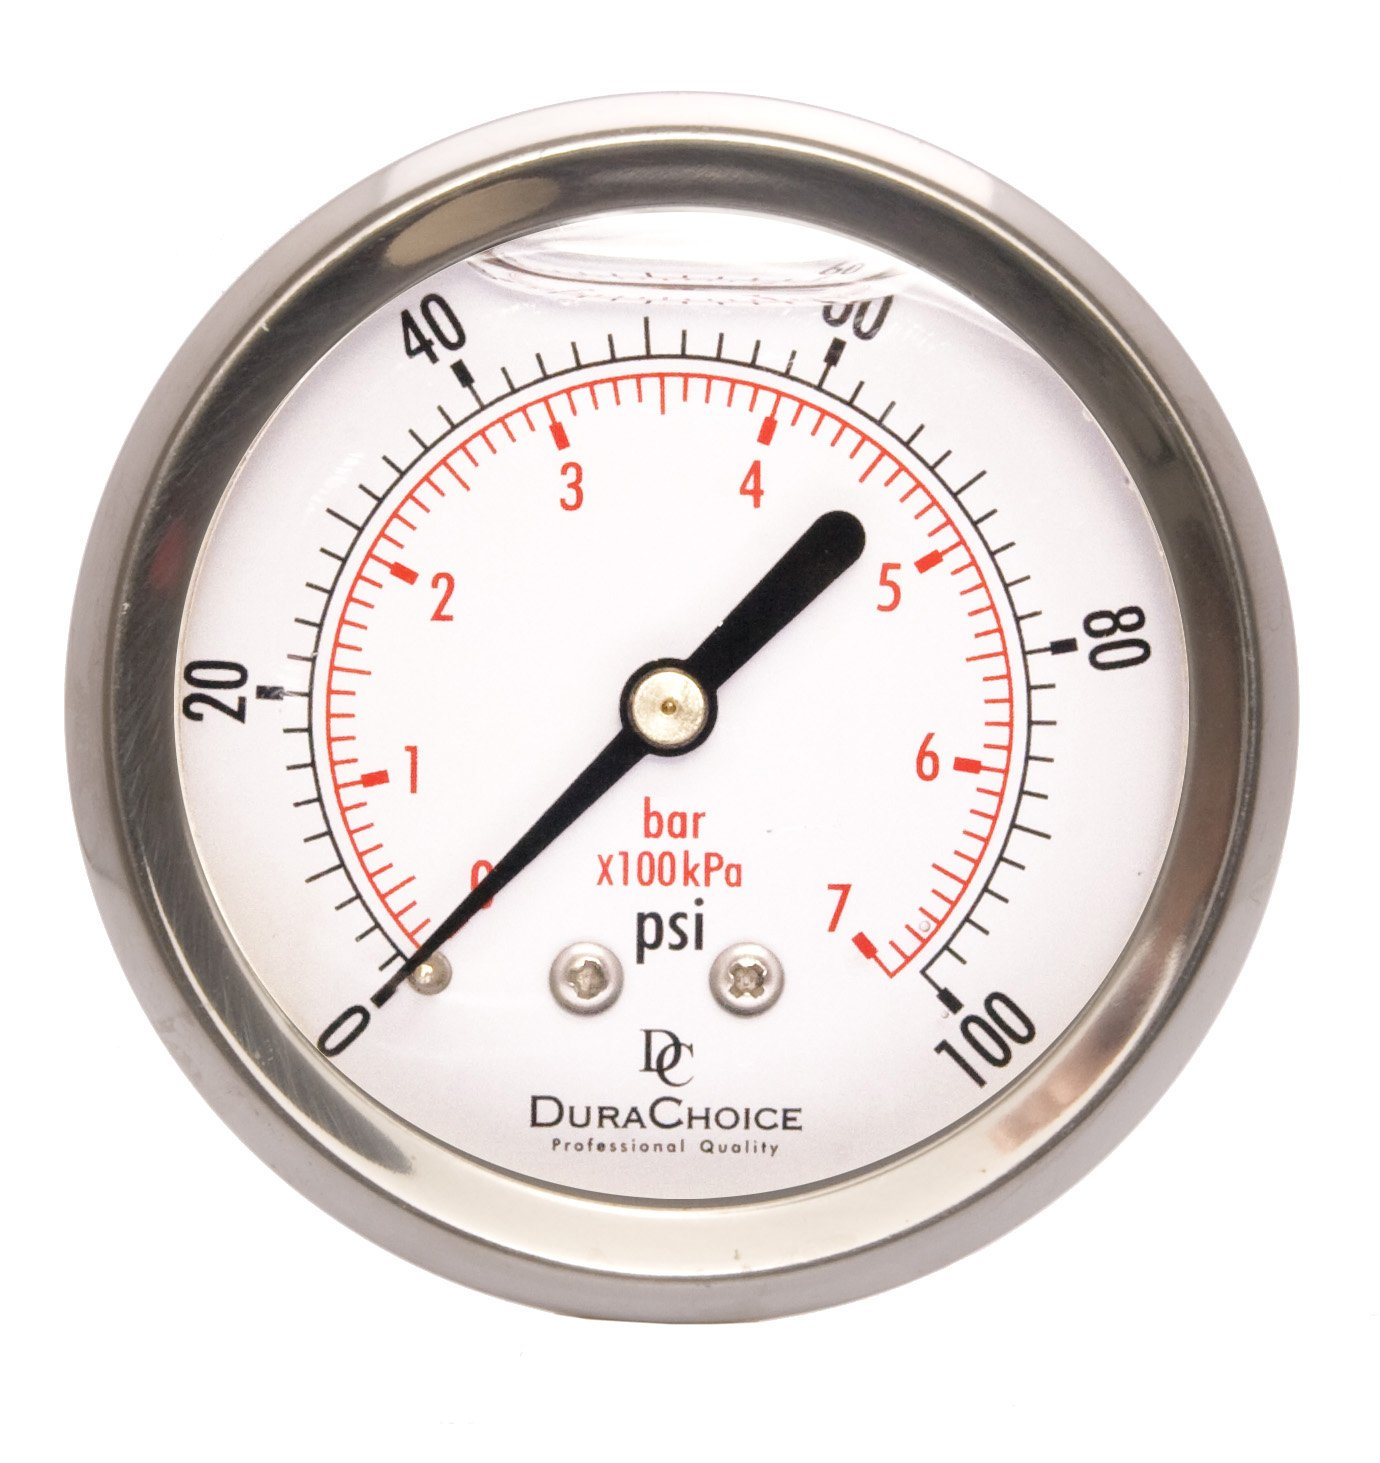 "Amazon 2 1 2"" Liquid Filled Pressure Gauges Stainless Steel Case Brass 1 4"" NPT Center Back Mount Connection 0 100PSI Automotive"